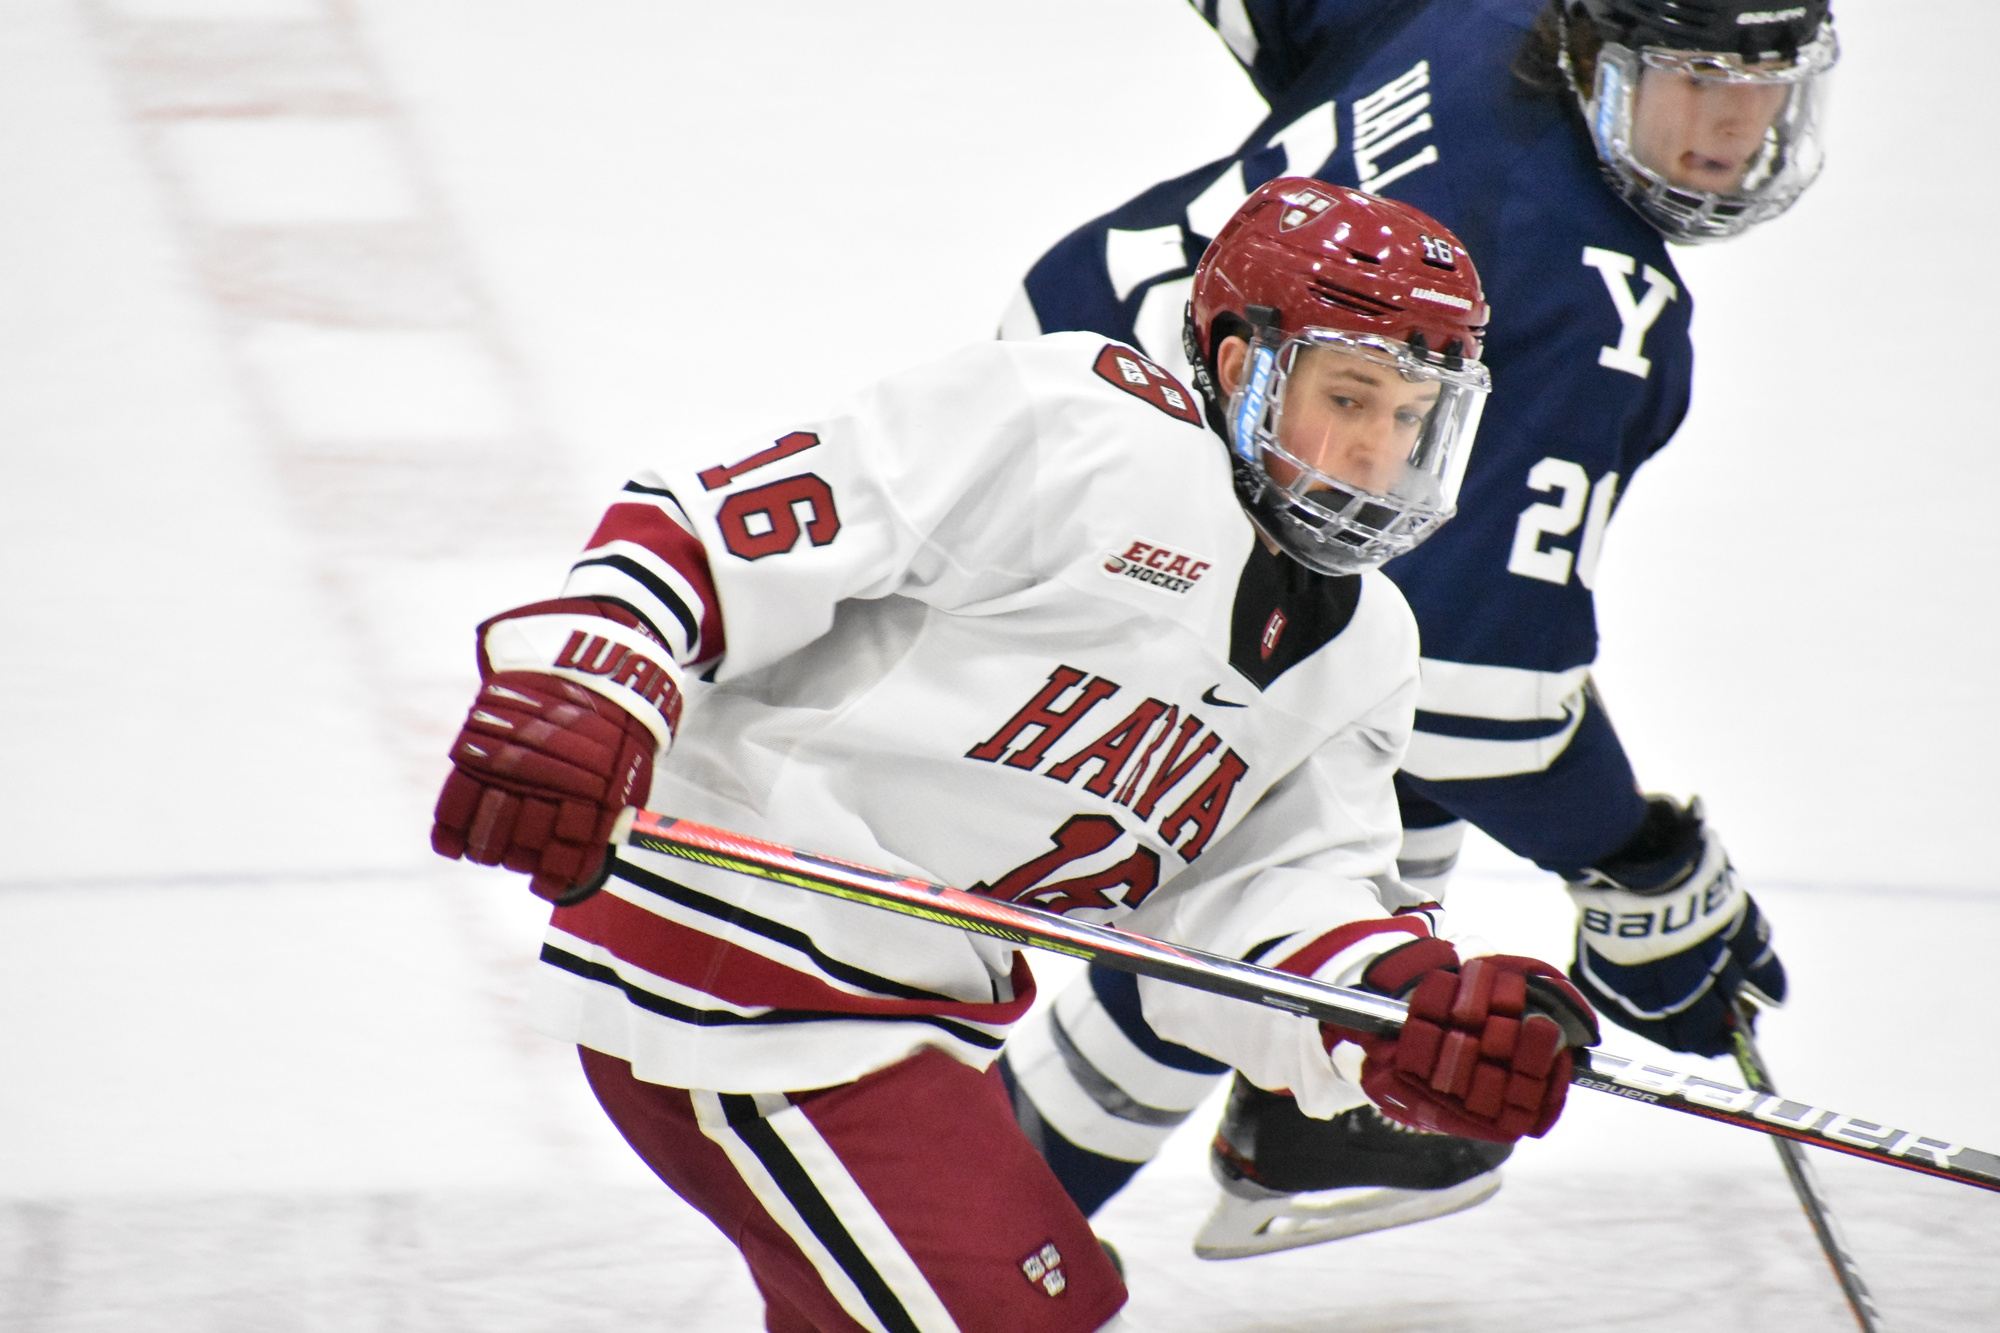 First-year forward Nick Abruzzese contributed two goals on three occasions in his rookie campaign, including in a rivalry game against Yale on home ice.